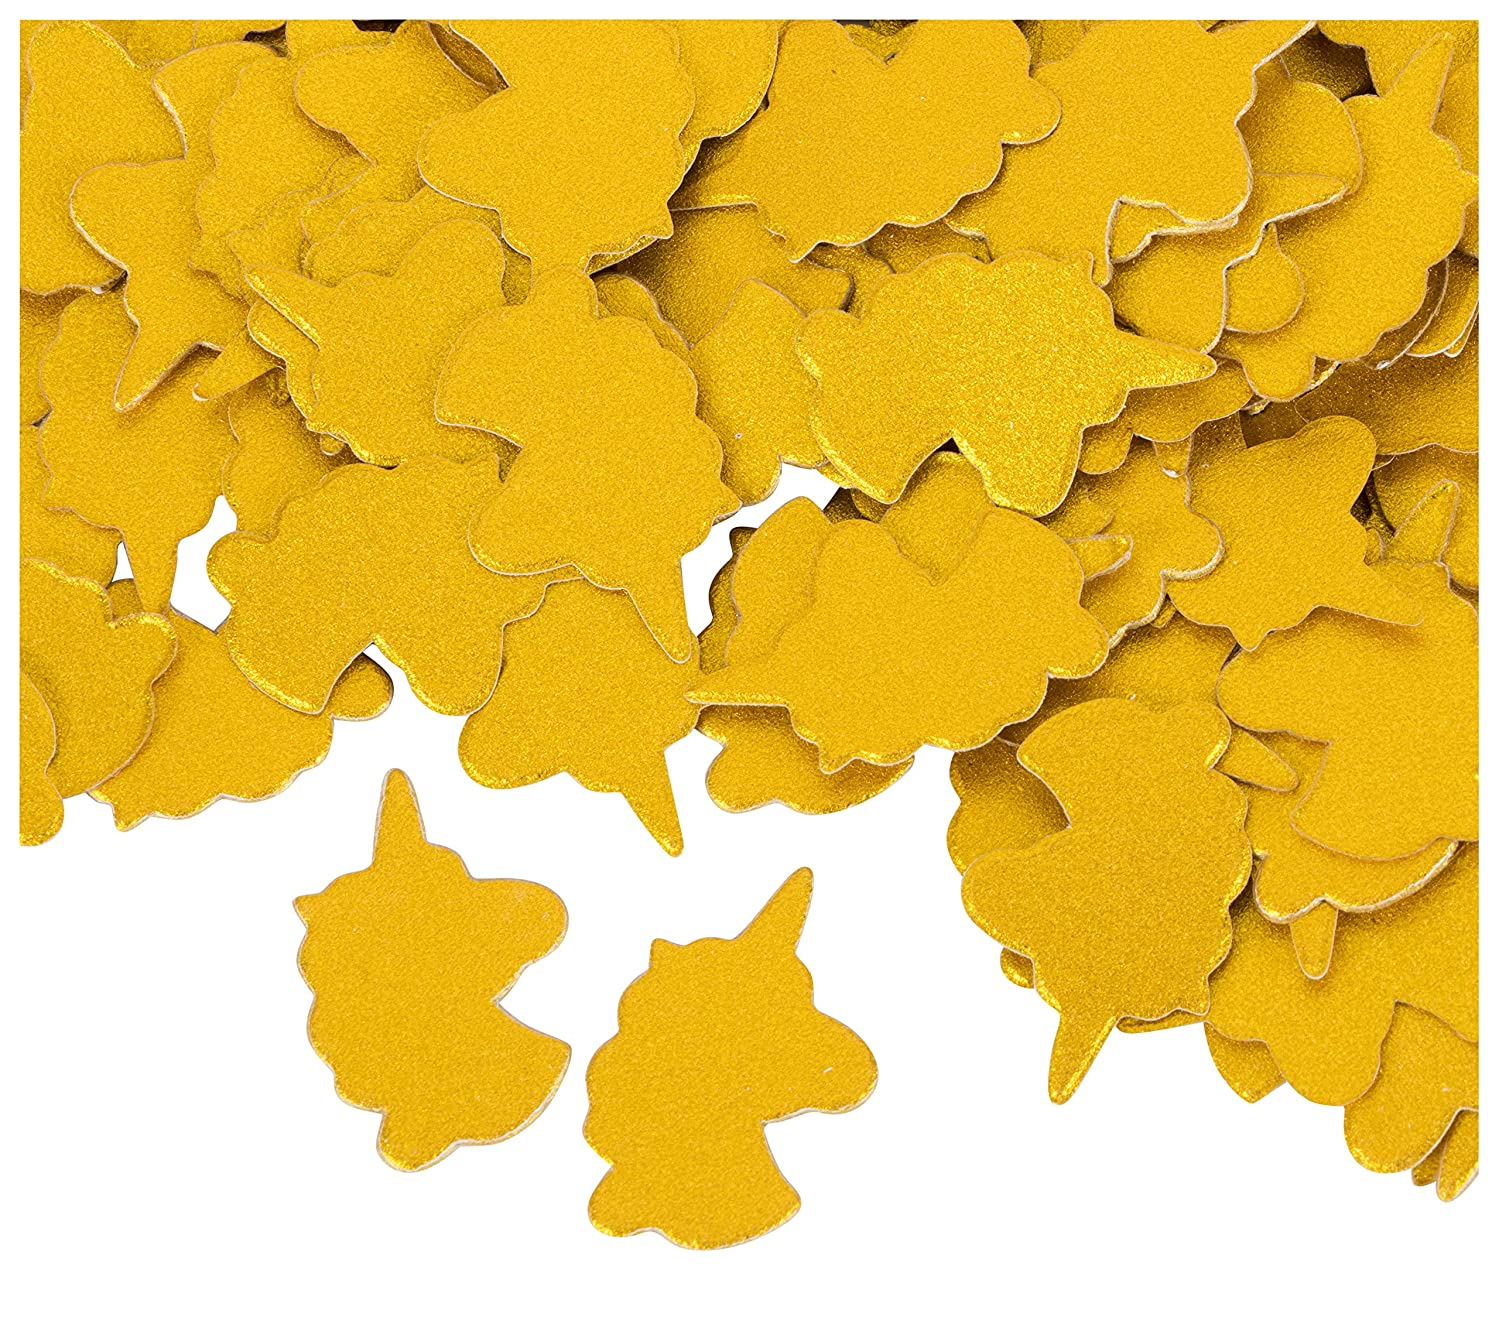 Unicorn Confetti - 1000-Pack Gold Unicorn Cutouts, Paper Party Confetti, Party Supplies, Table Scatter, for Bachelorette, Wedding, Princess Themed Birthday Parties, Bridal Showers, 1 x 1.3 Inches